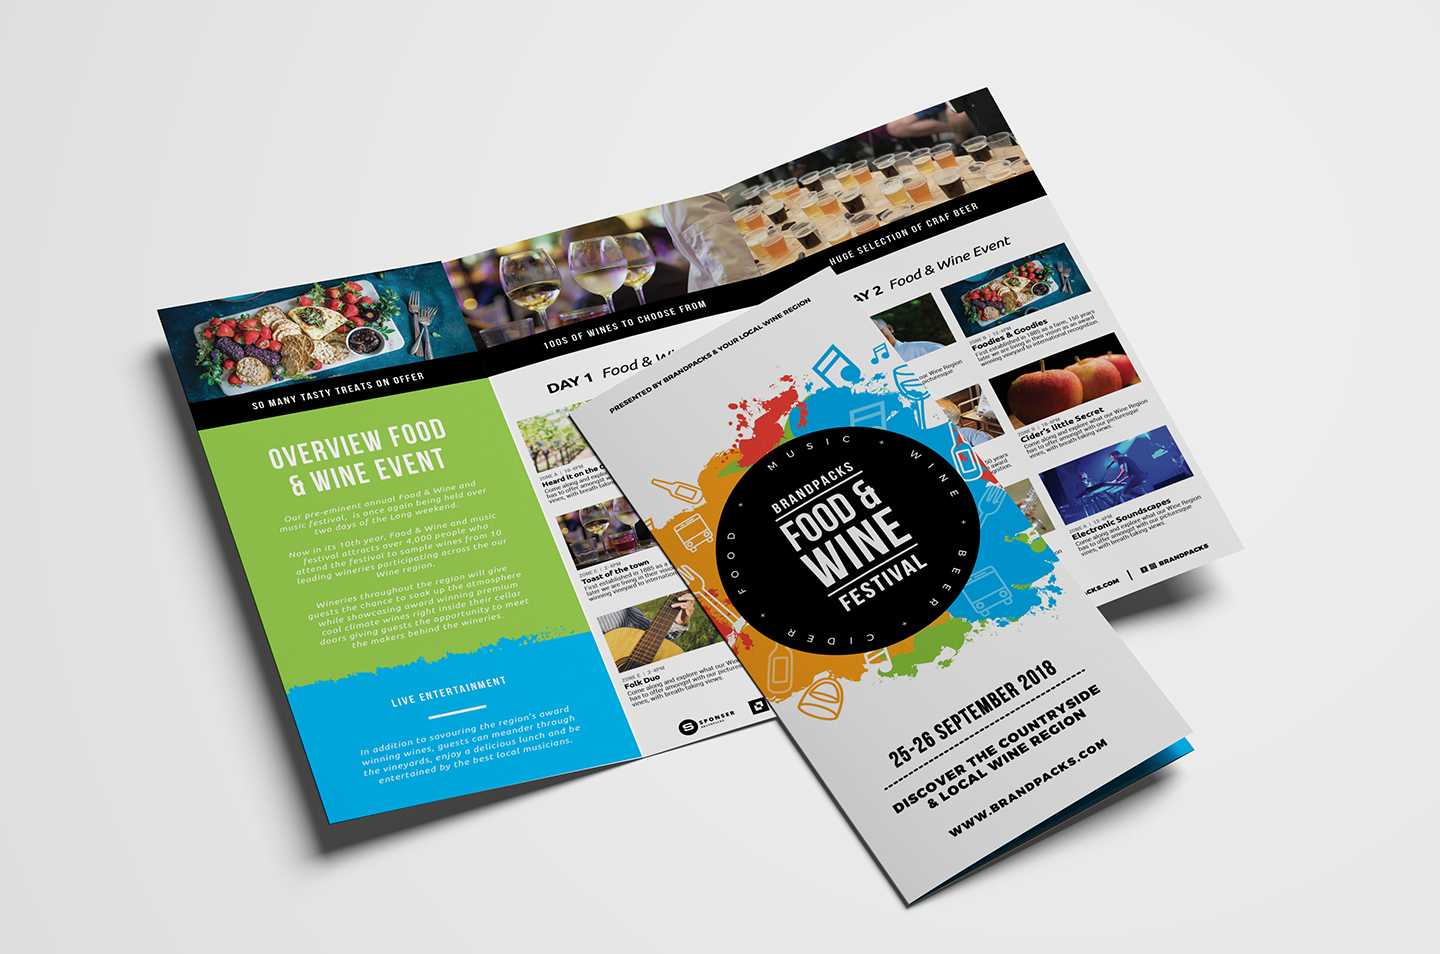 Free Tri Fold Brochure Template For Events & Festivals - Psd Within 2 Fold Brochure Template Free